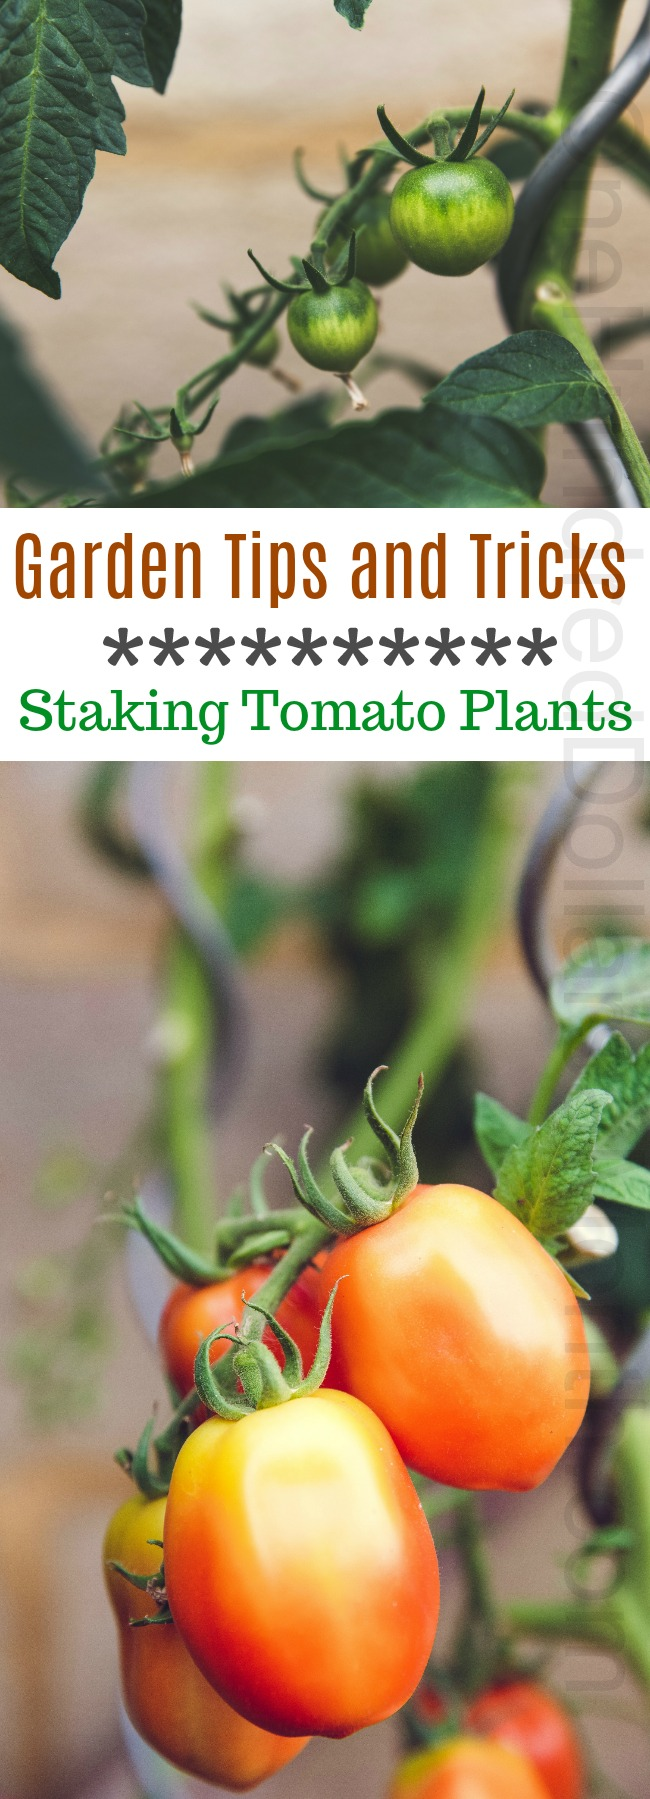 Garden Tips and Tricks – Staking Tomato Plants